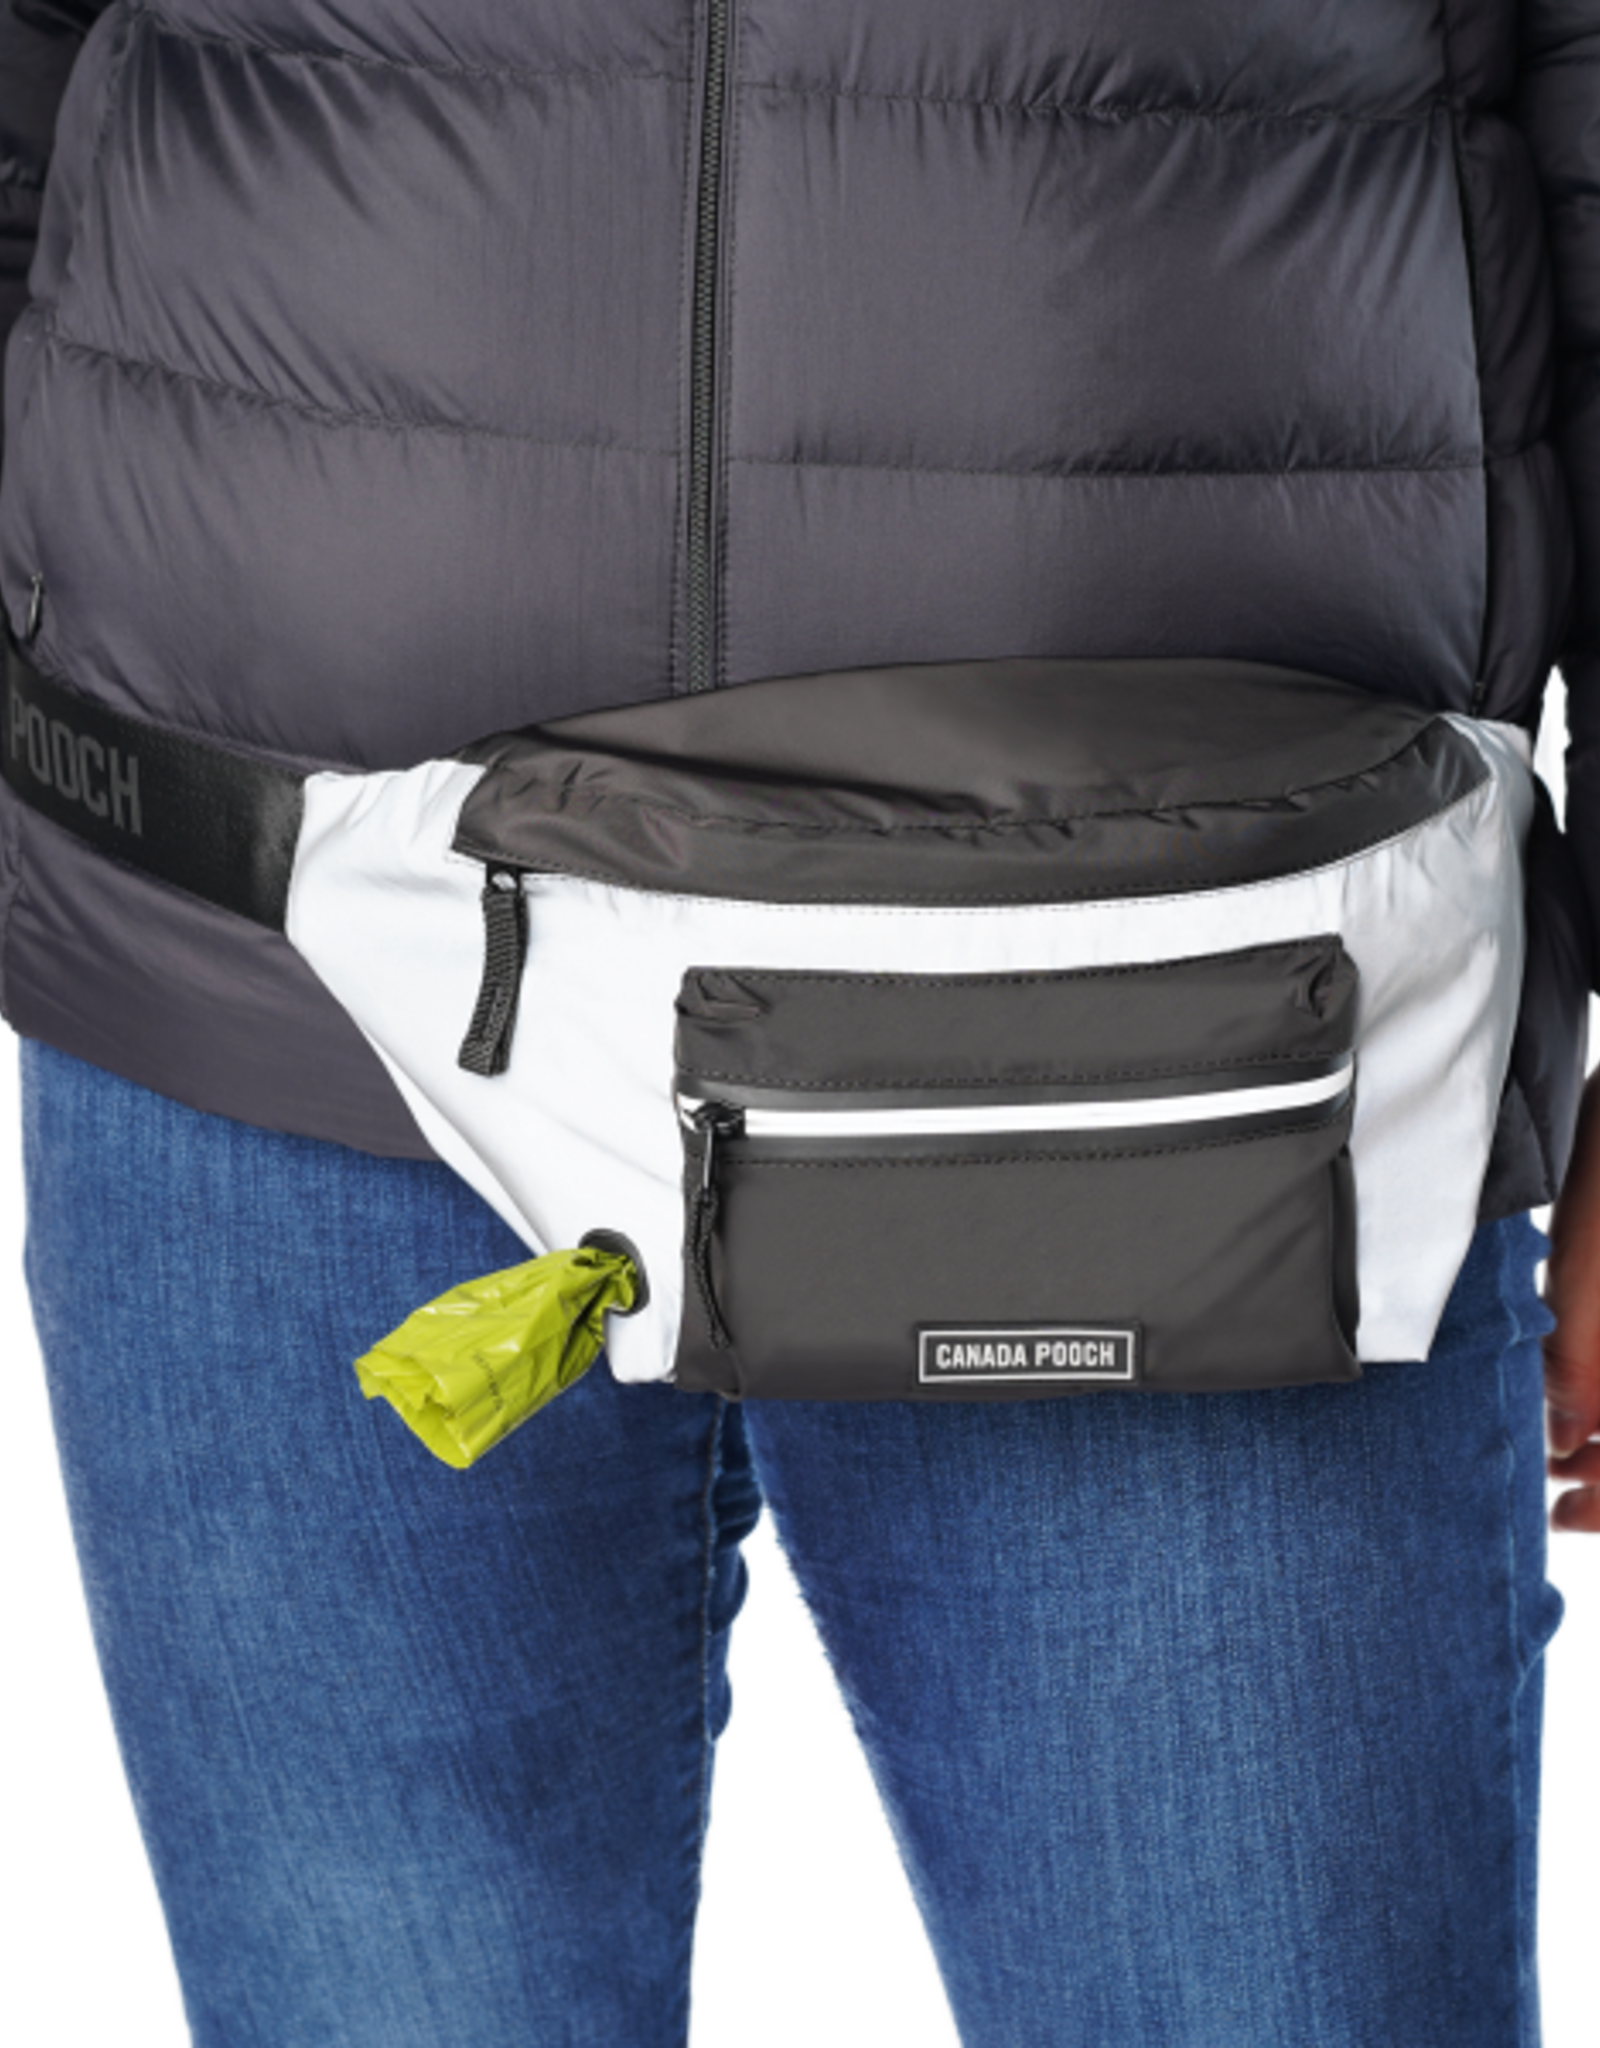 Canada Pooch Canada Pooch The Everything Fanny Pack Reflective O/S